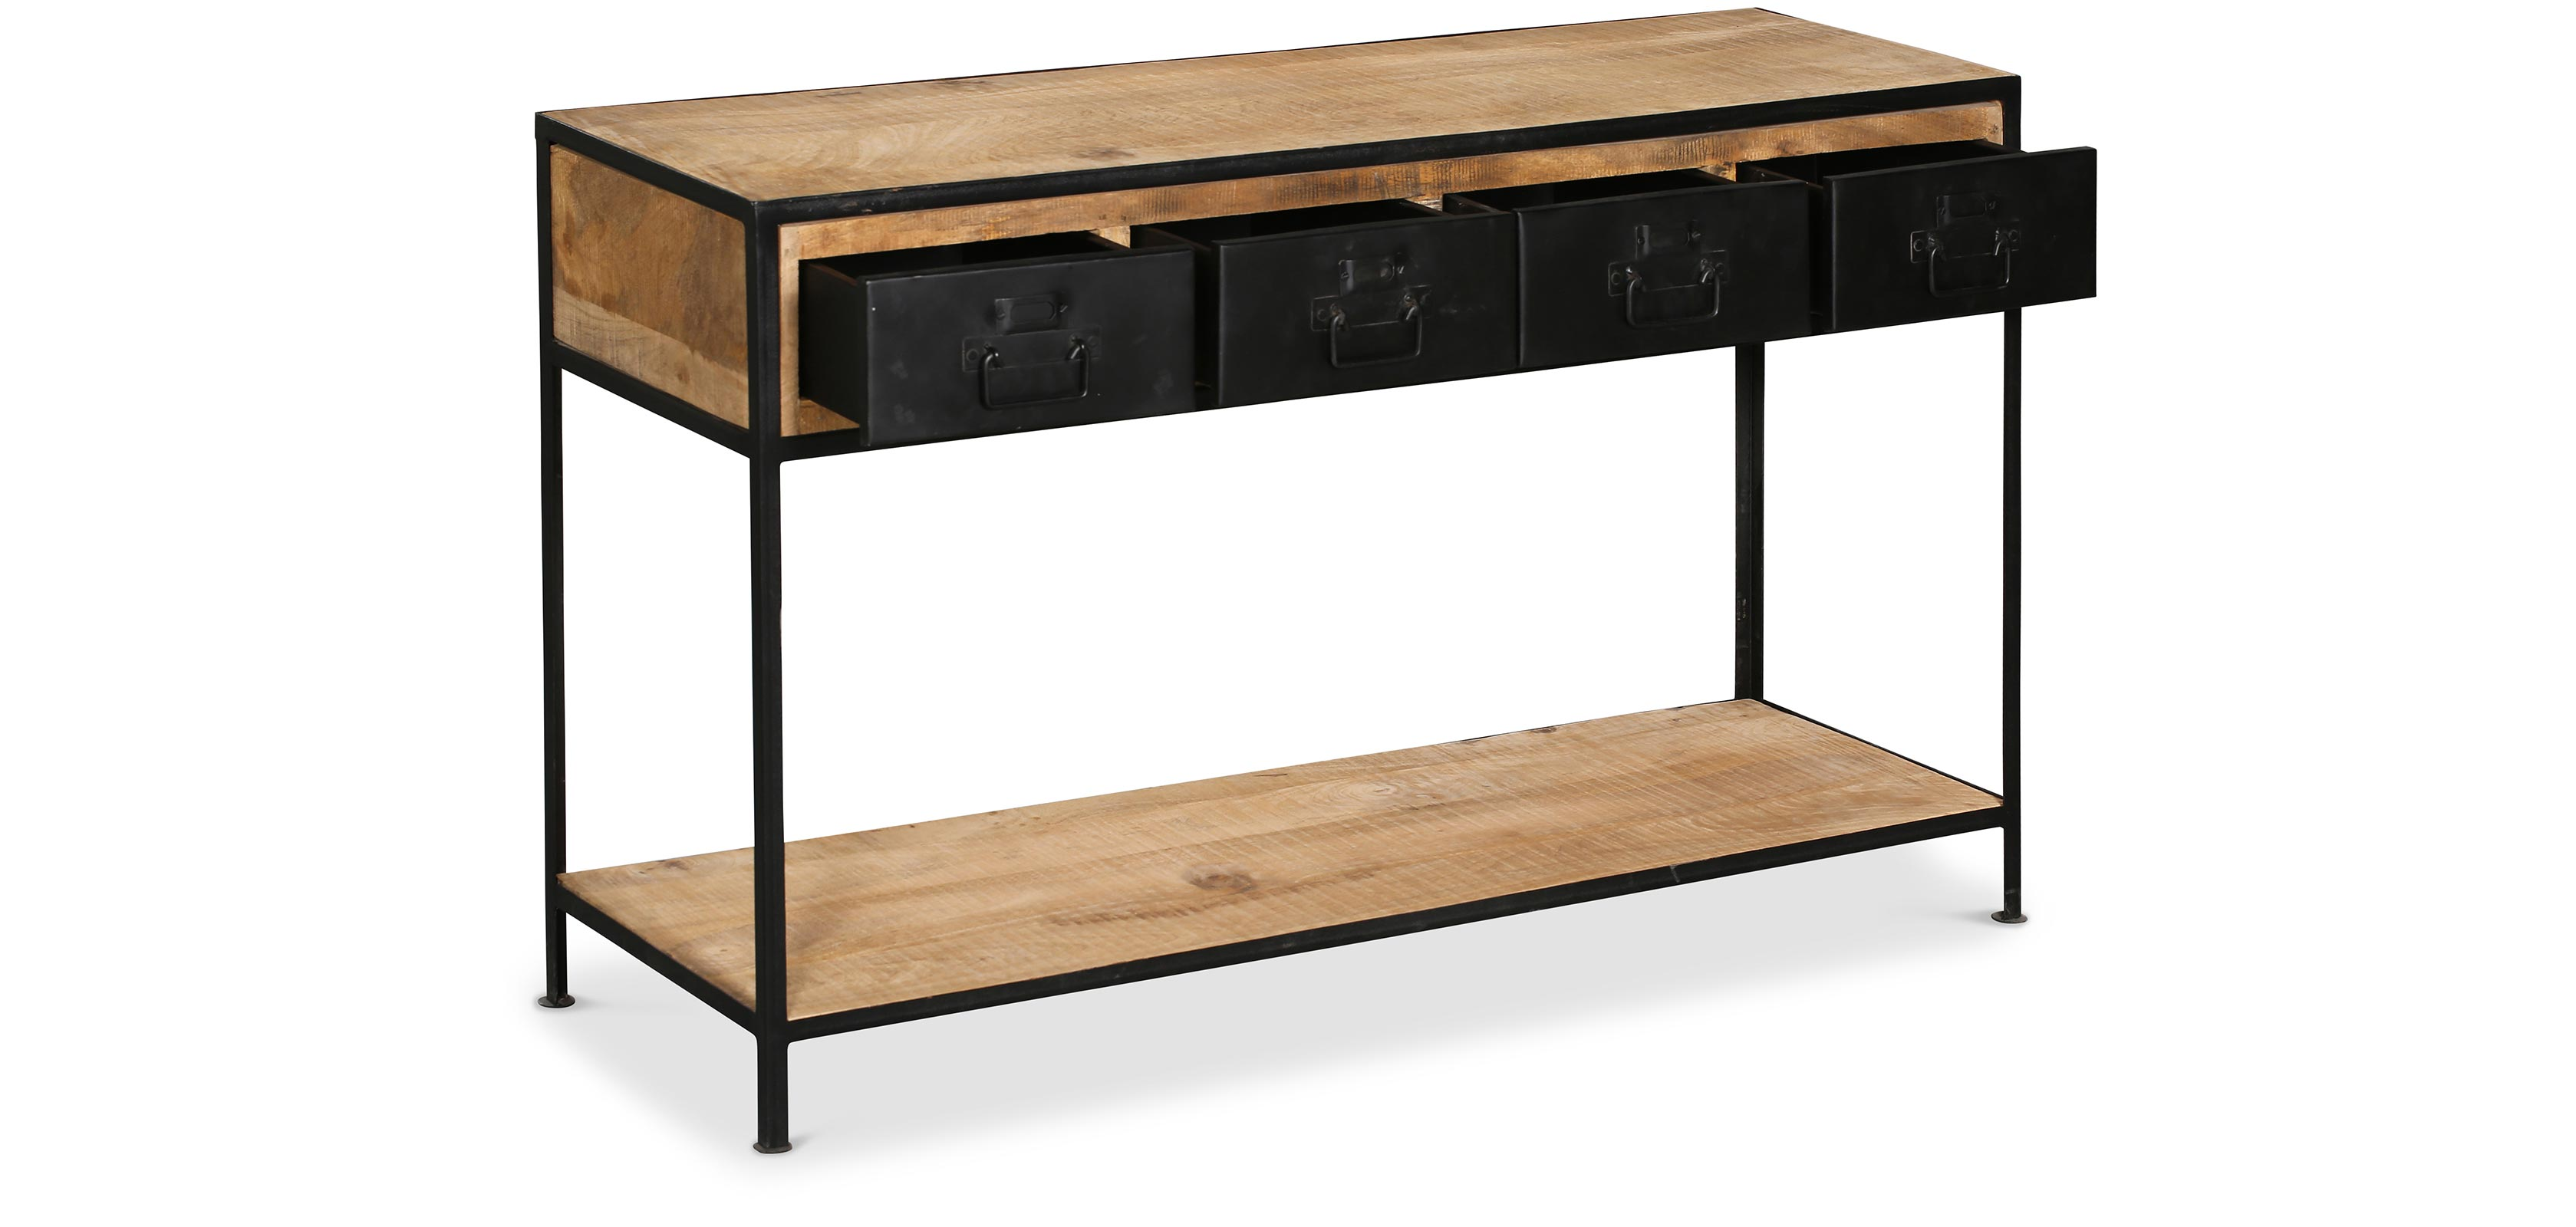 console tiroirs vintage industriel bois. Black Bedroom Furniture Sets. Home Design Ideas